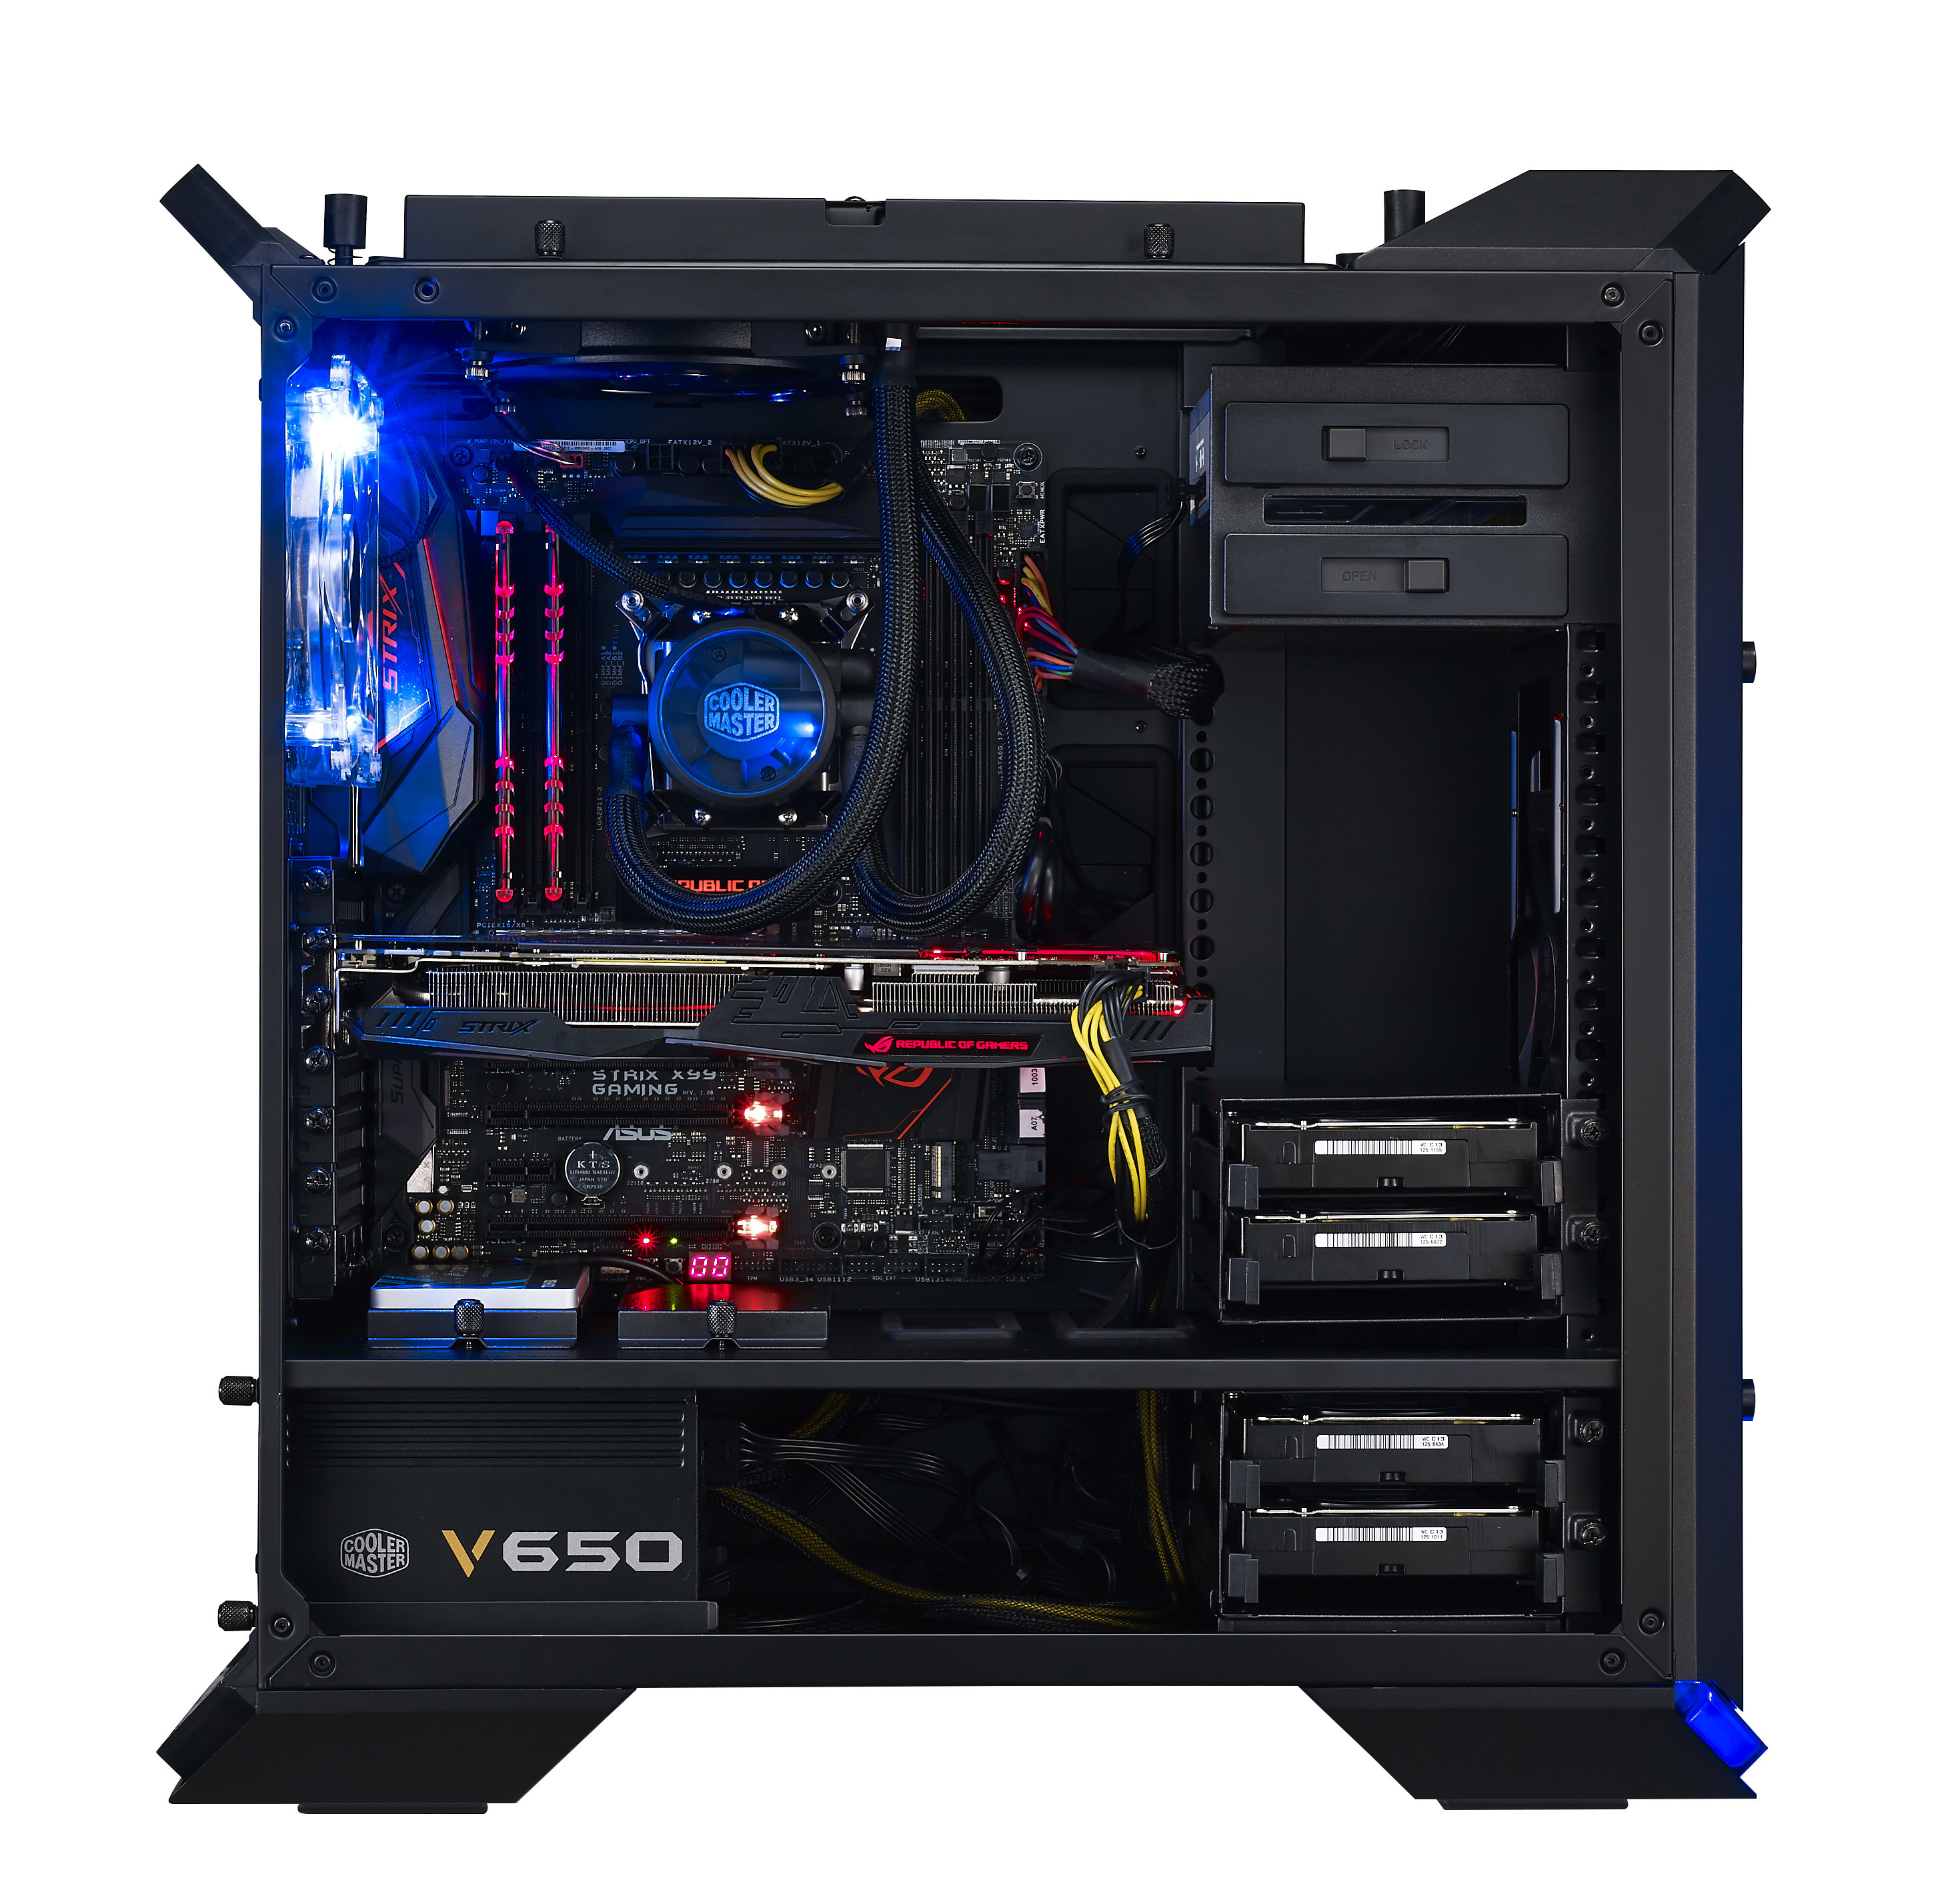 Cooler Master Announces The Mastercase Pro 6 Chassis